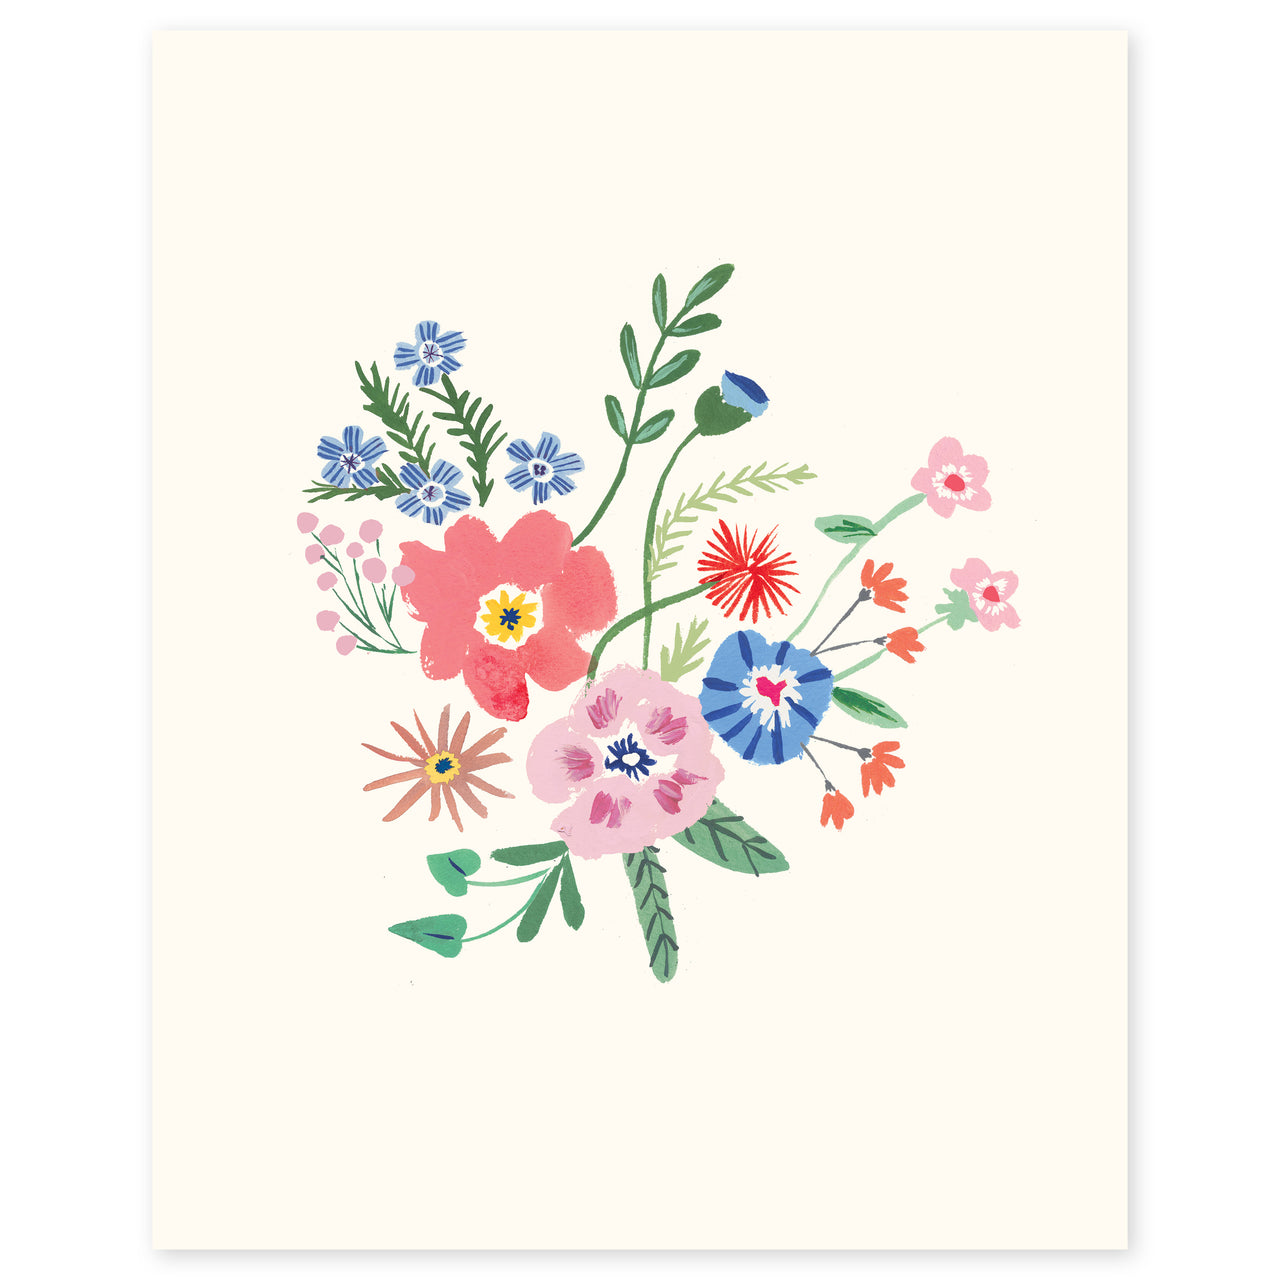 Wildflowers Print by Danielle Kroll